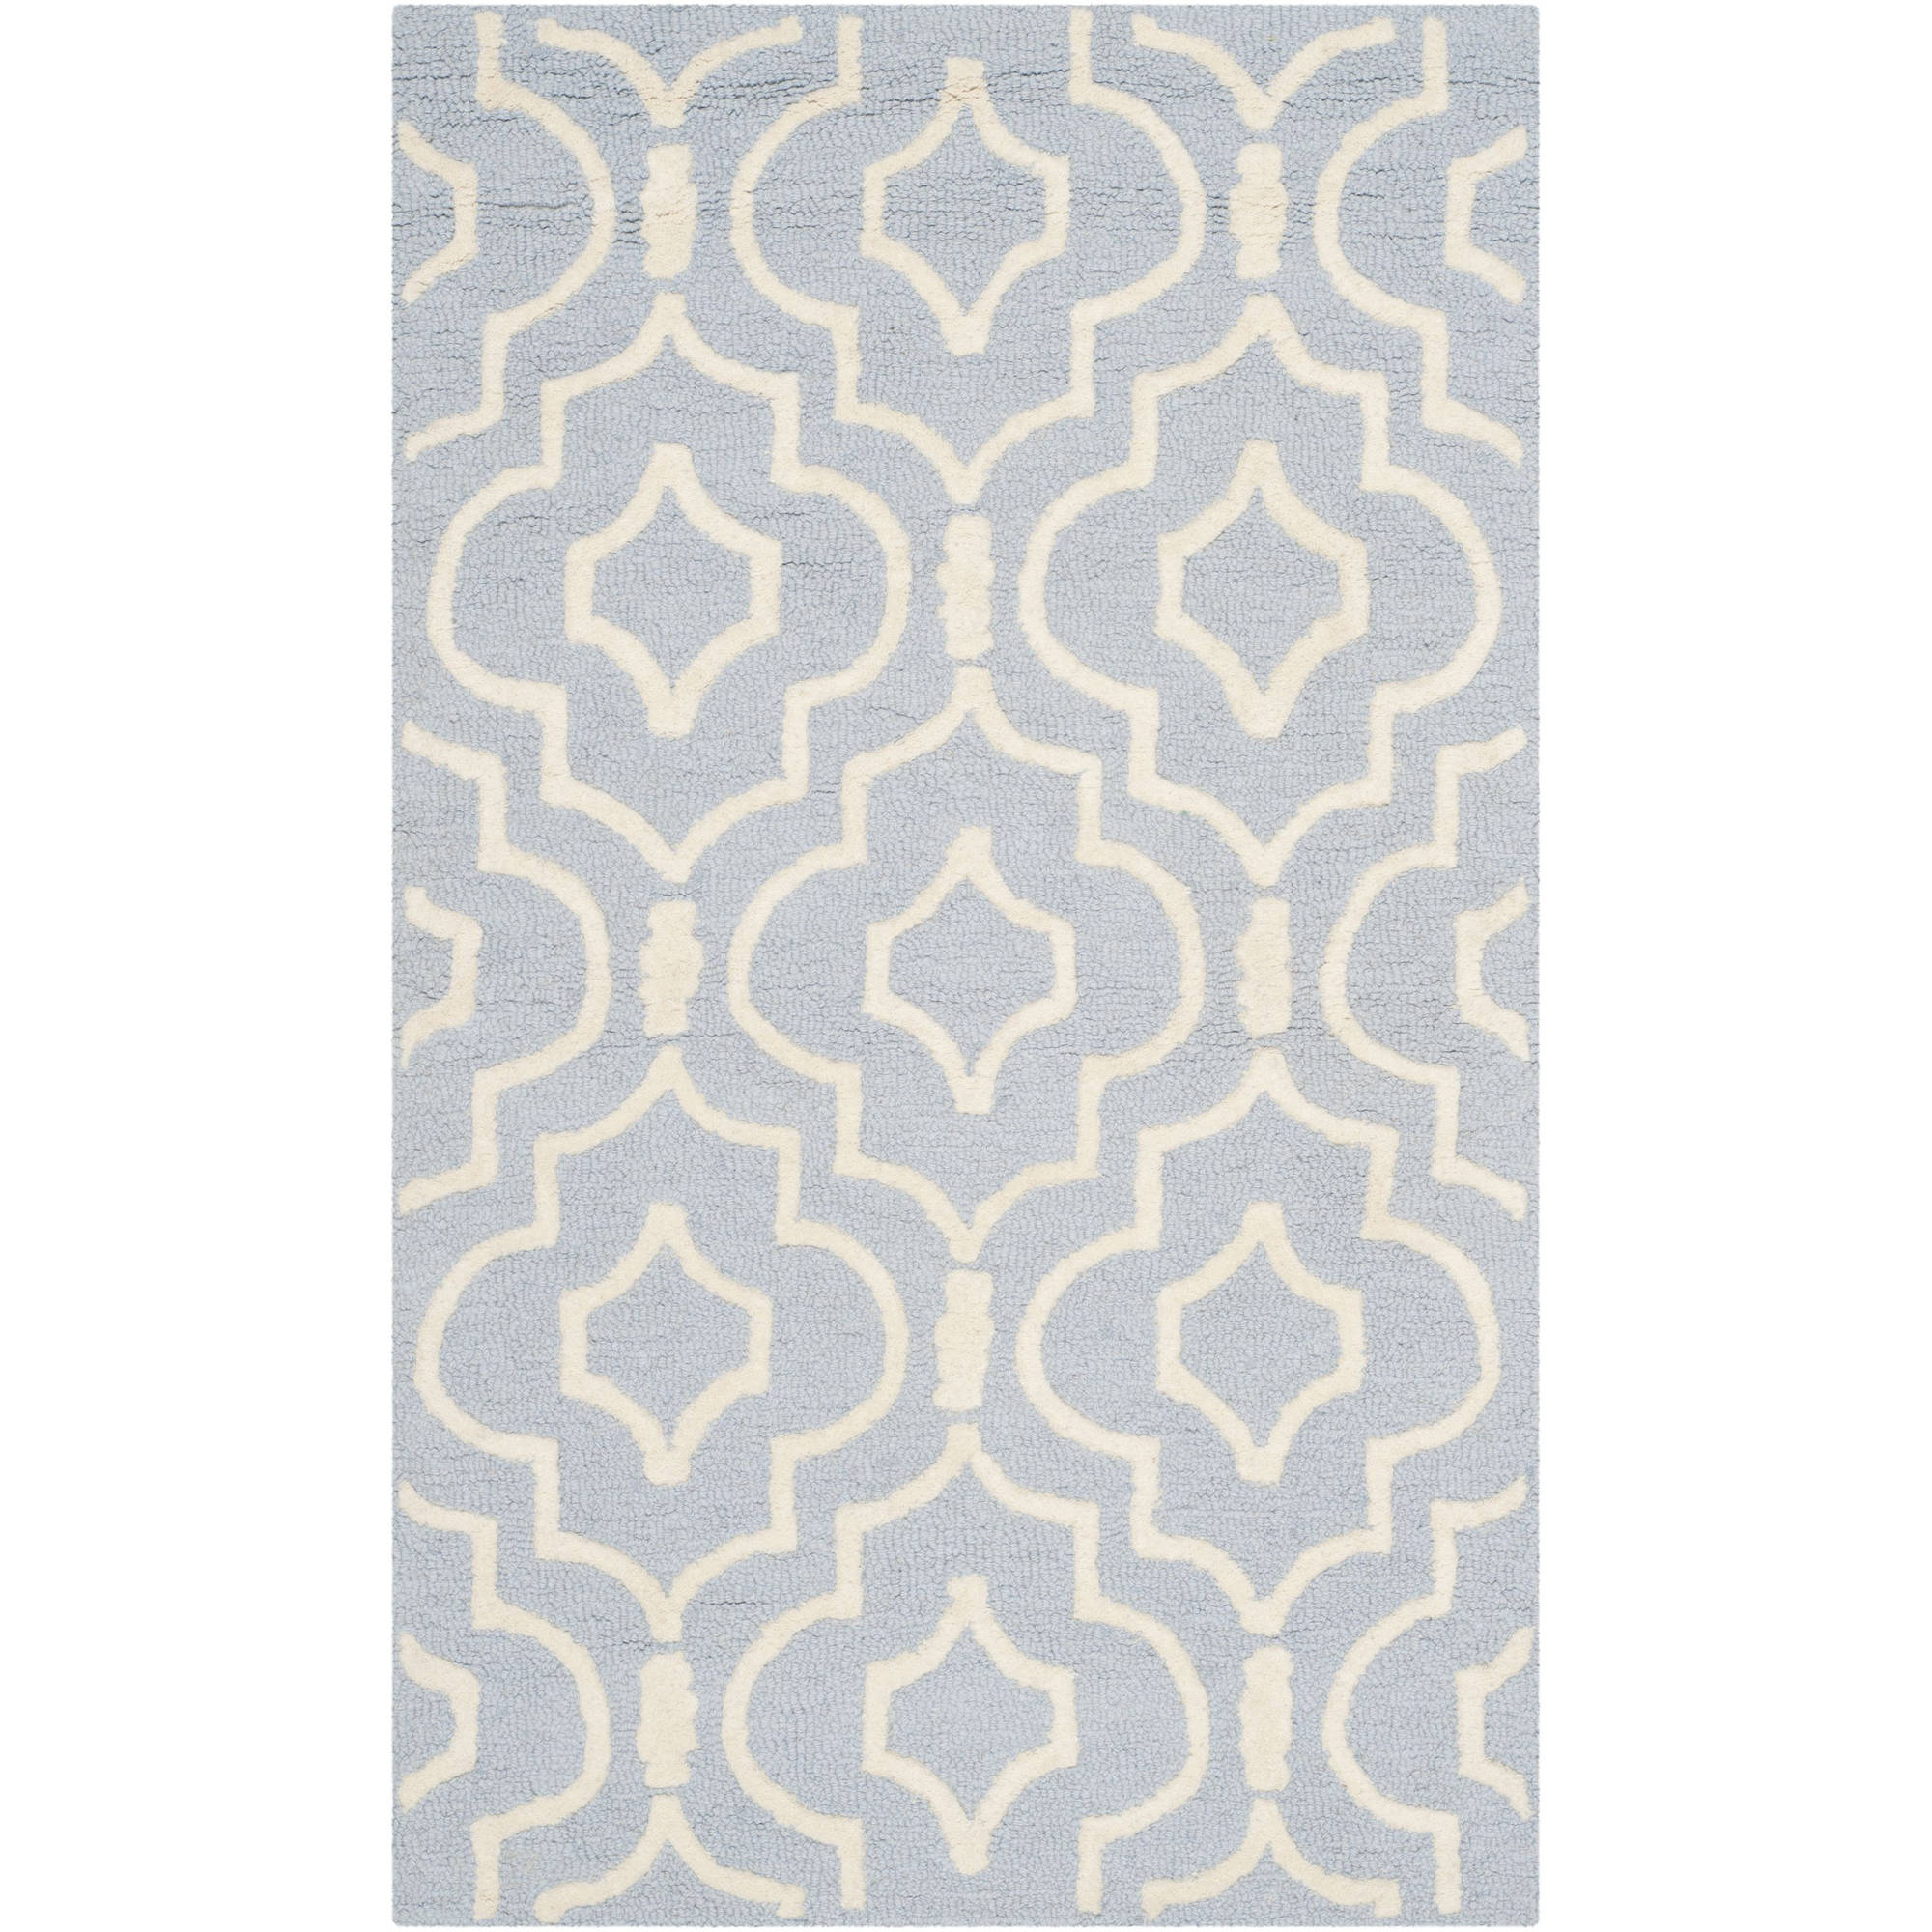 Safavieh Cambridge Julian Geometric Area Rug or Runner